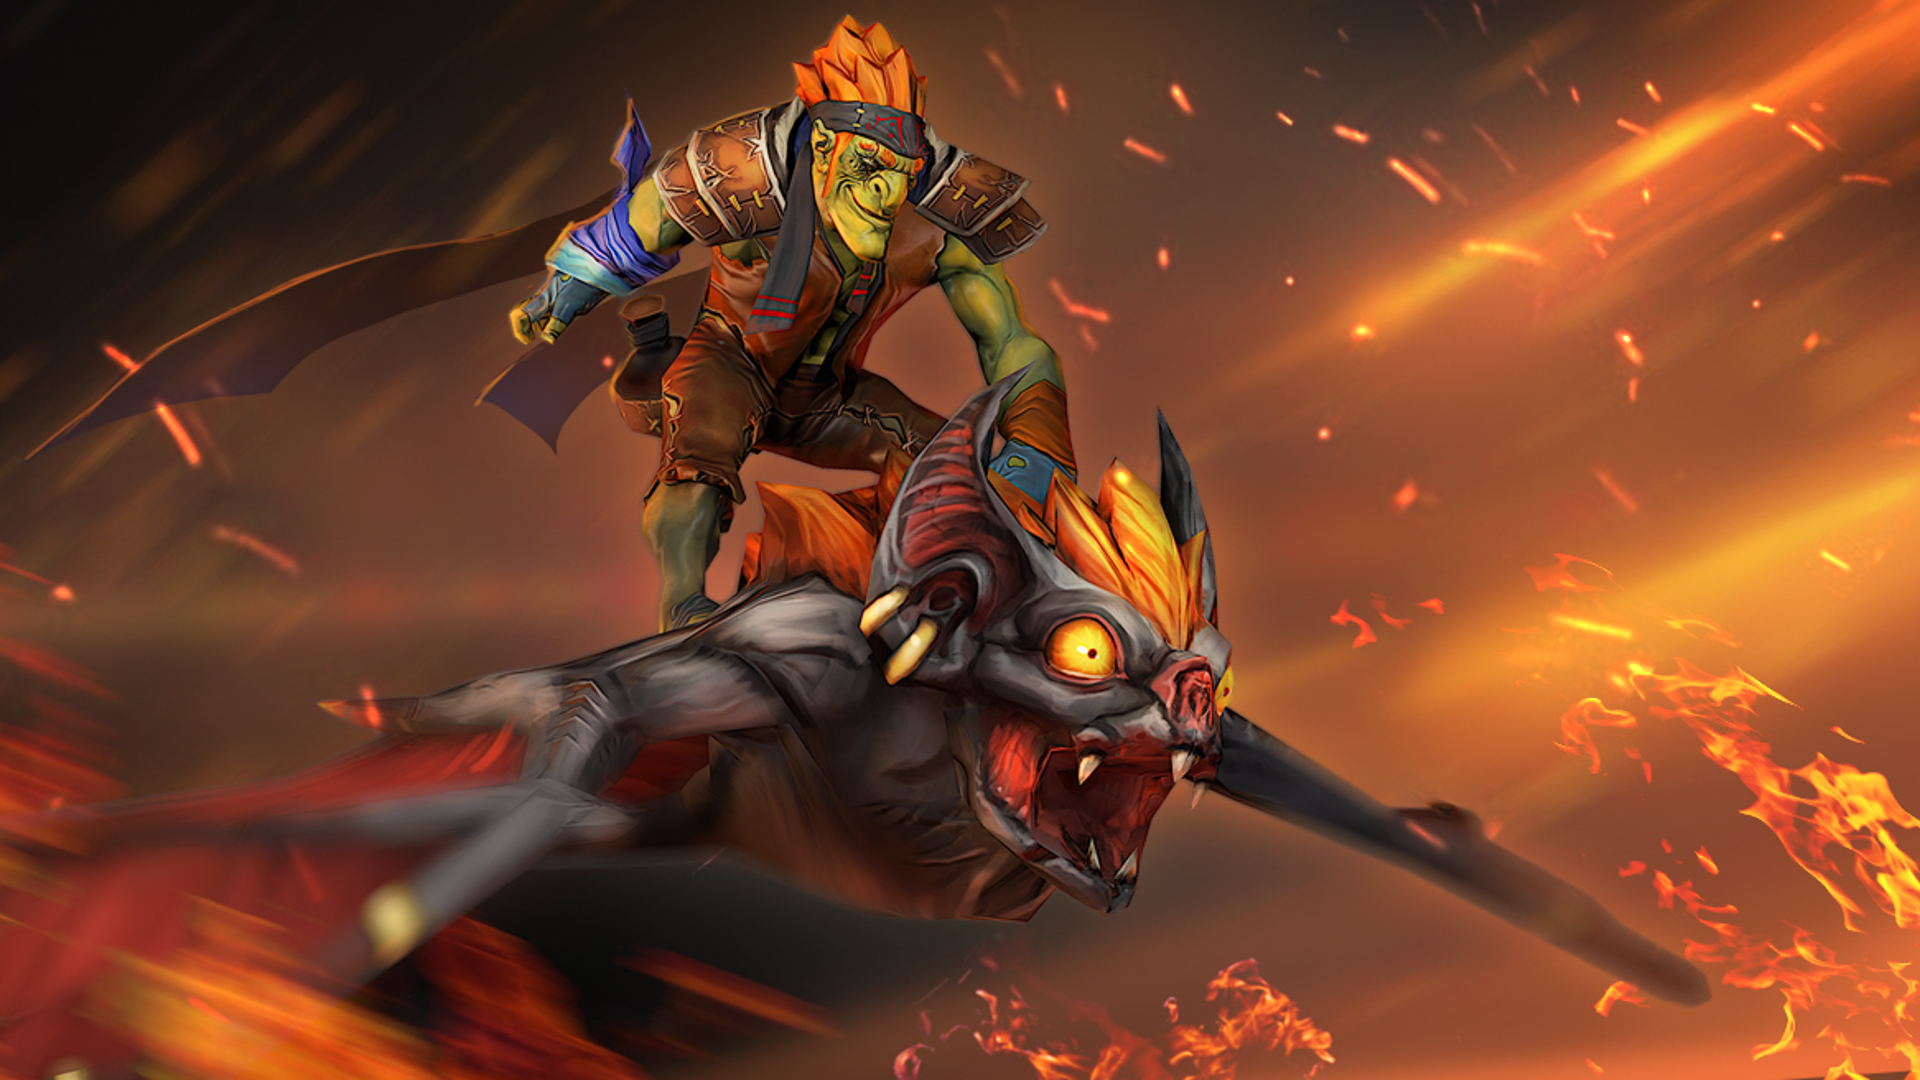 This Dota 2 and League of Legends app translates between the two MOBAs